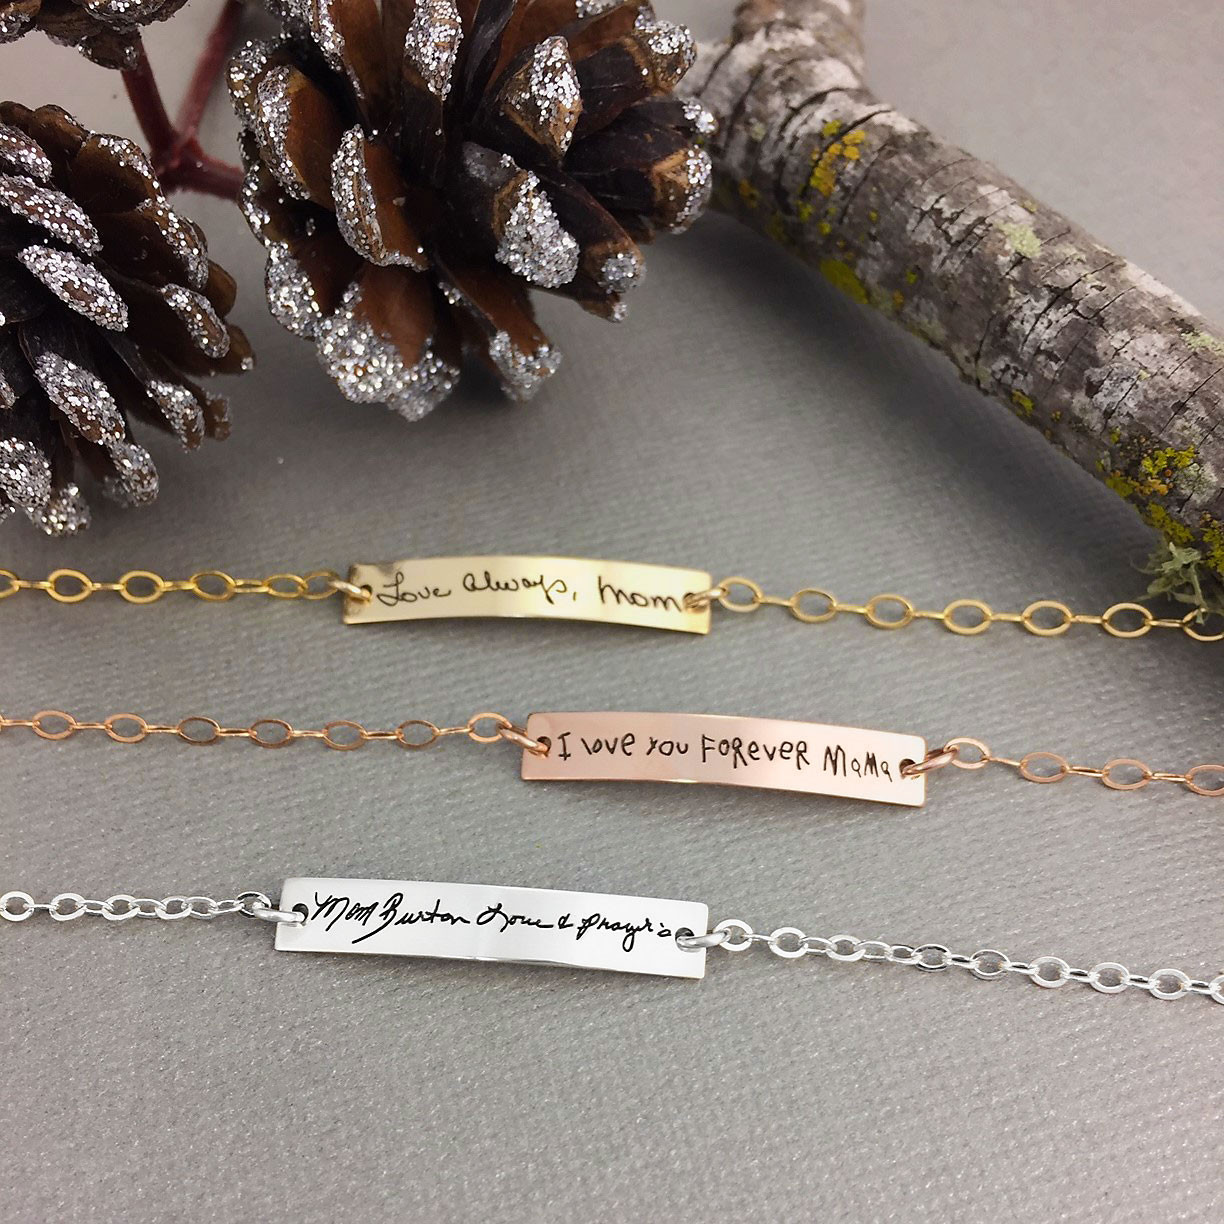 Dainty bracelet with your actual writing in gold, silver and rose gold